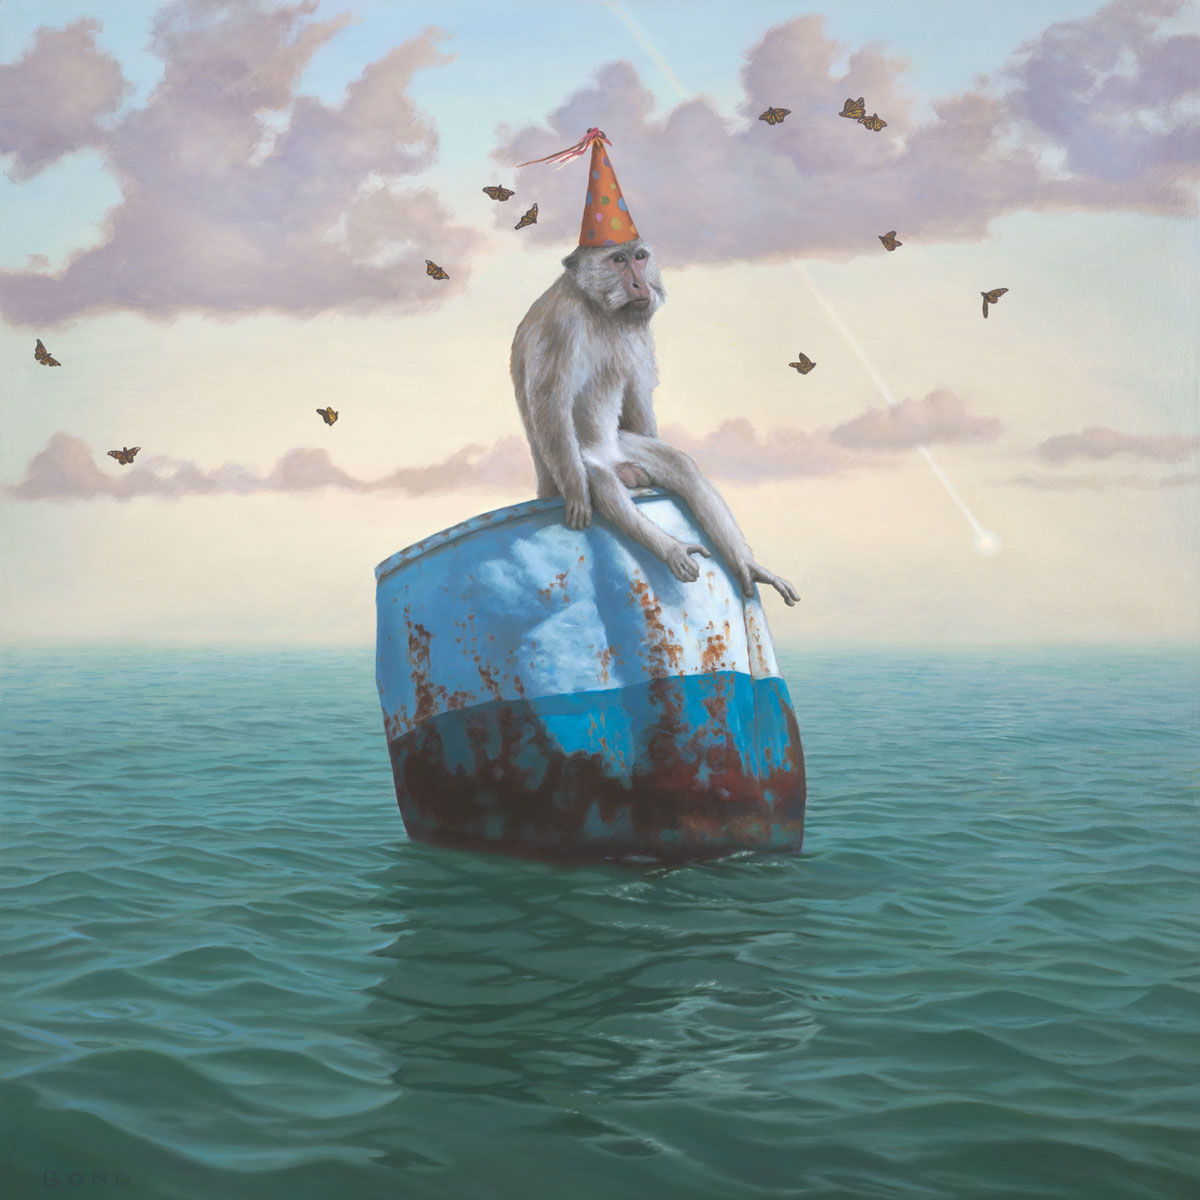 The Remarkable Circumstantial Adaptability of Man, painting of a monkey wearing a party hat floating on a barrel in the ocean,  art with long tailed macaque, art about happiness, adapt, happy, joy, positive, art with butterfly, butterflies, sky, cloud, water, ocean, waves, buoy, monkey, long-tailed macaques, art with comet meteor, omen, fate, chance, hope, party hat, birthday, float, nature, soulful uplifting inspirational art, soul stirring illusion art, romantic art,  surrealism, surreal art, dreamlike imagery, fanciful art, fantasy art, dreamscape visual, metaphysical art, spiritual painting, metaphysical painting, spiritual art, whimsical art, whimsy art, dream art, fantastic realism art, magic realism oil painting by Paul Bond